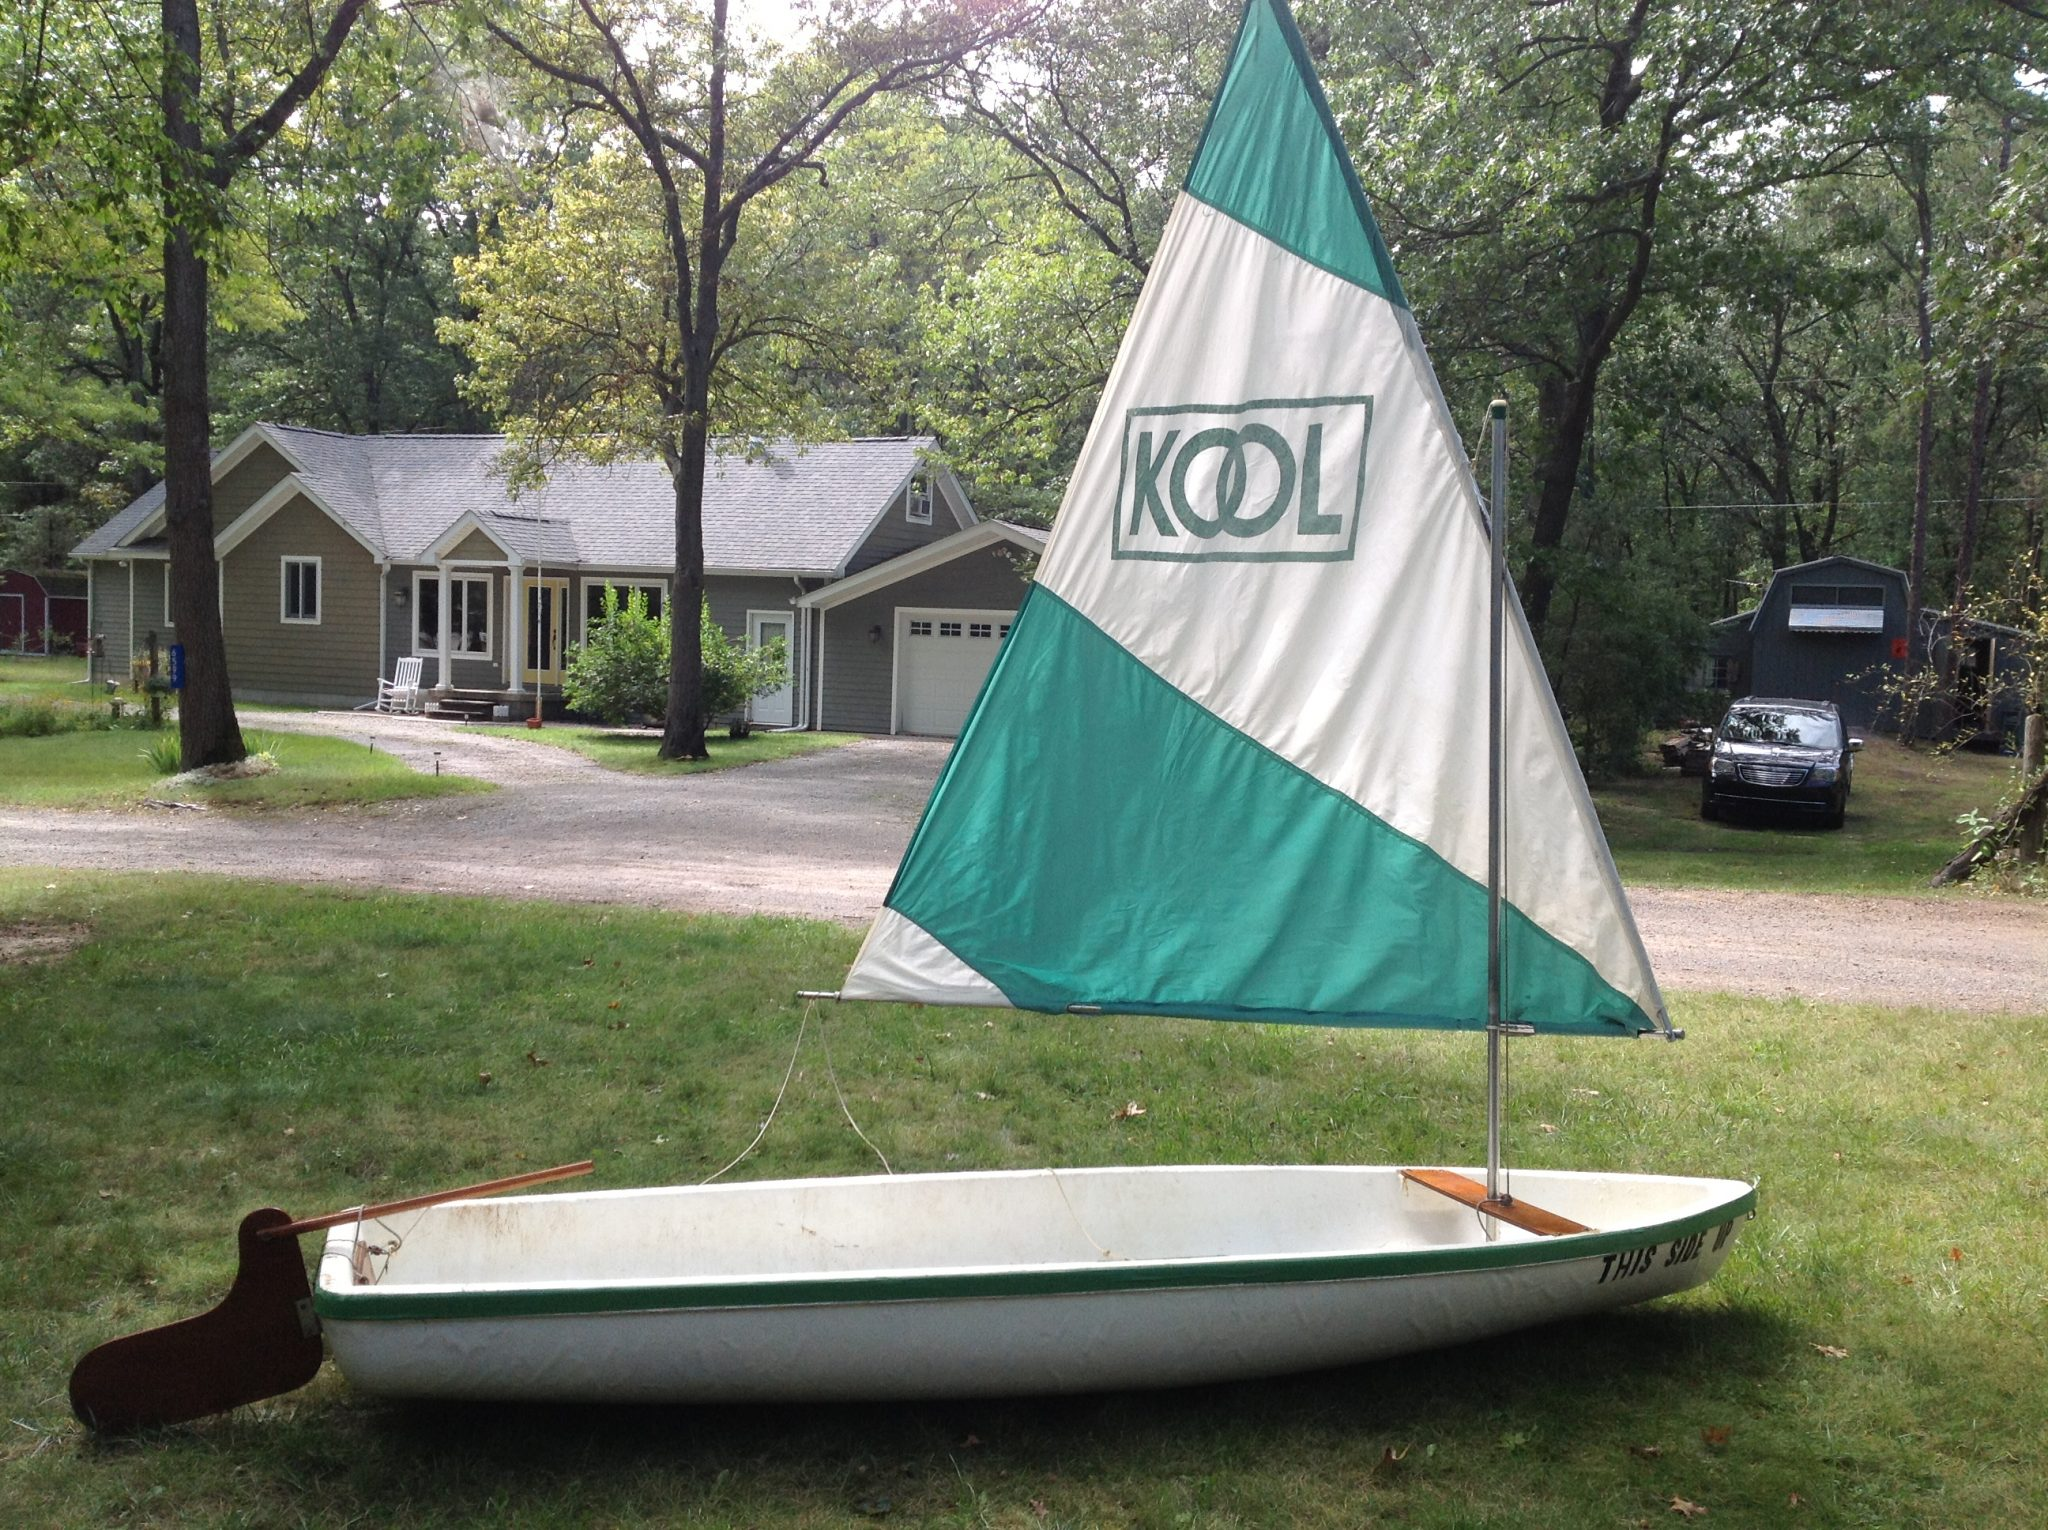 Kool Snark Sailboat